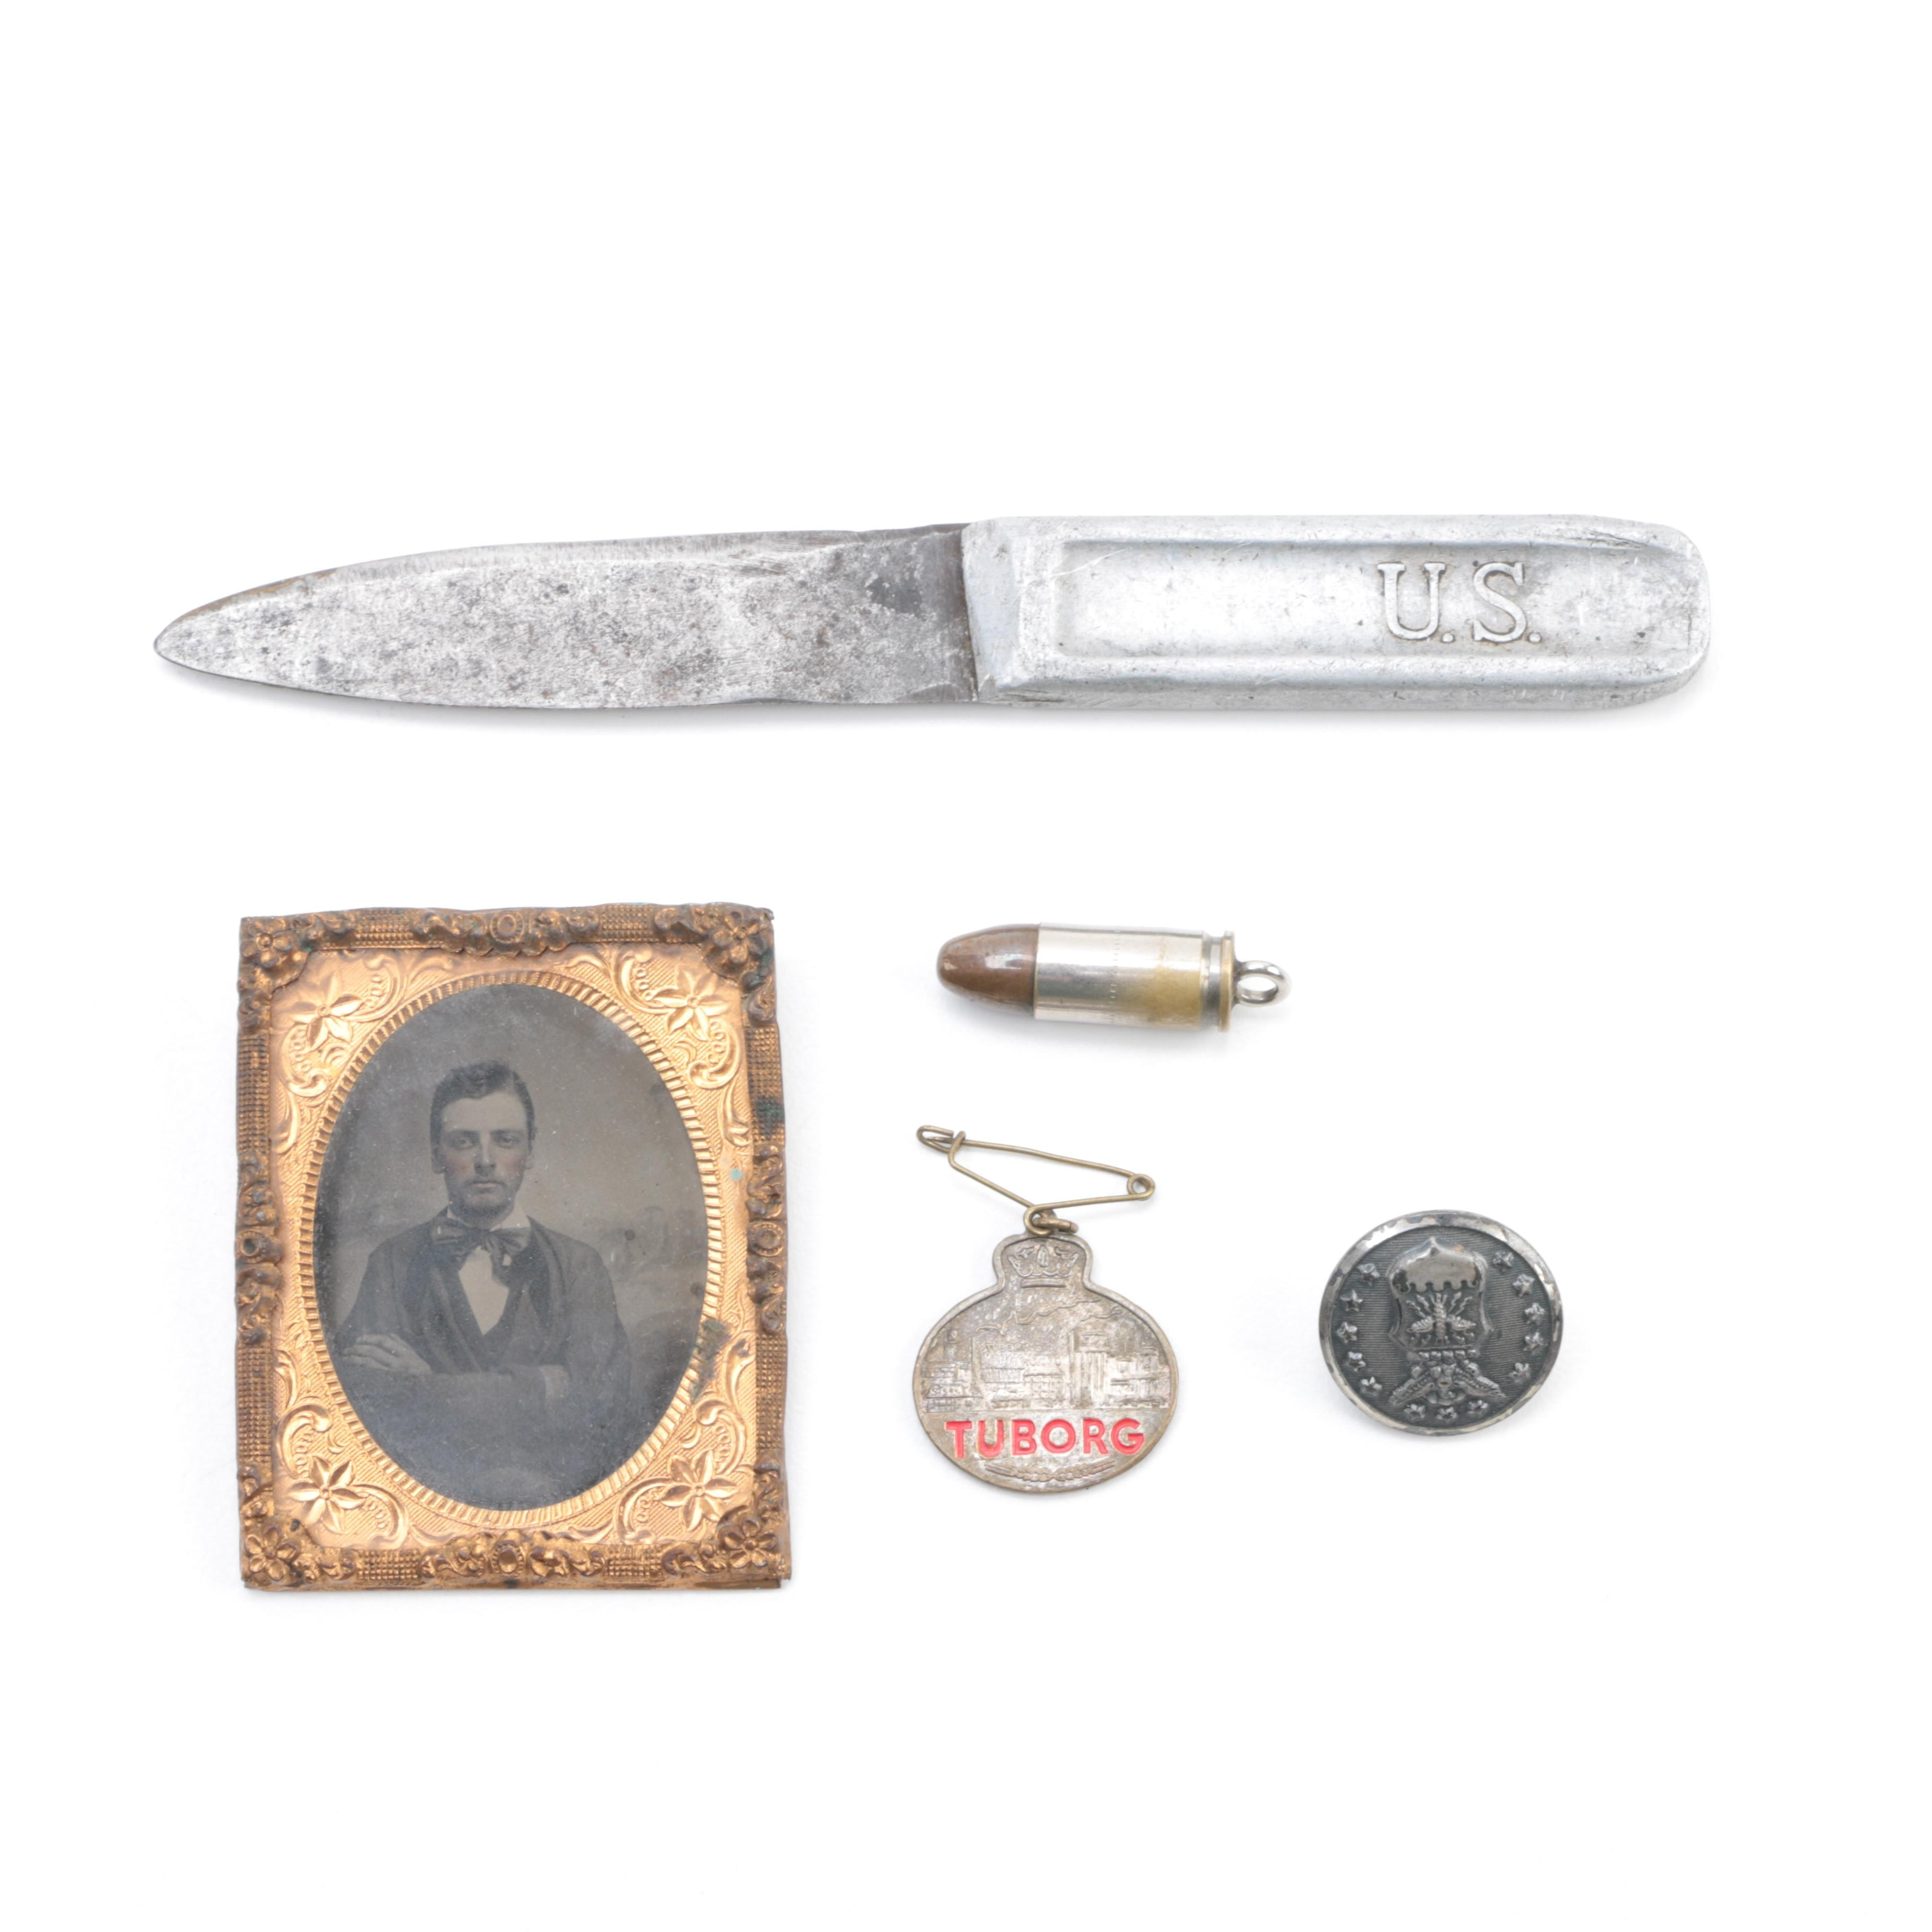 Vintage Military Collectibles and Tintype Portrait